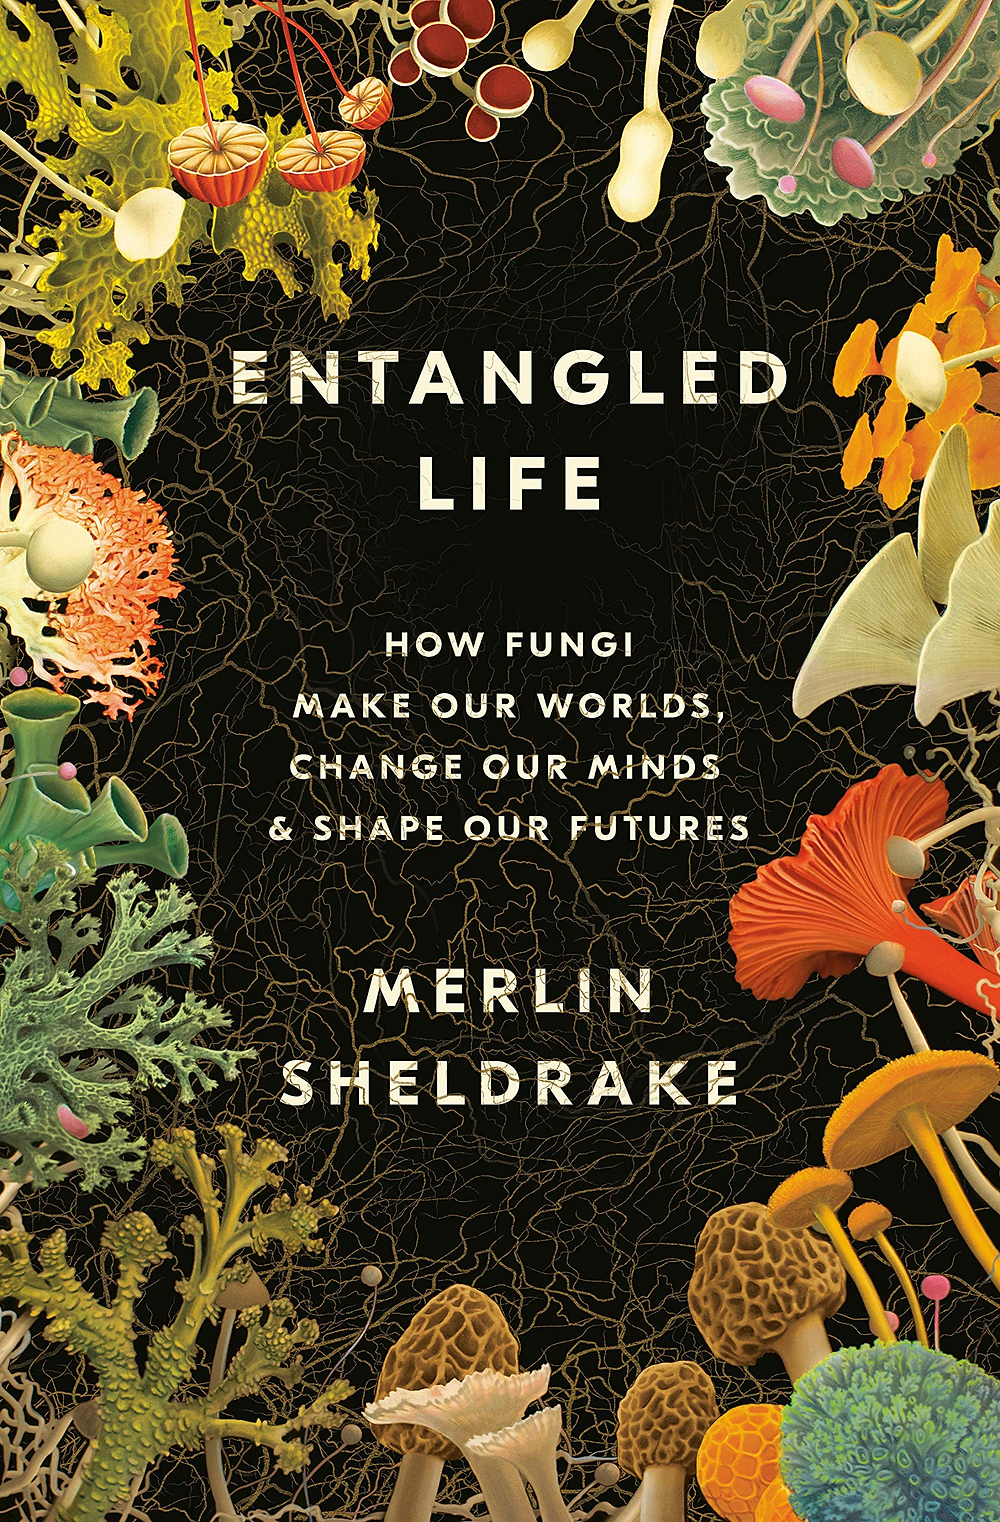 Cover image of the book Entangled Life by Merlin Sheldrake